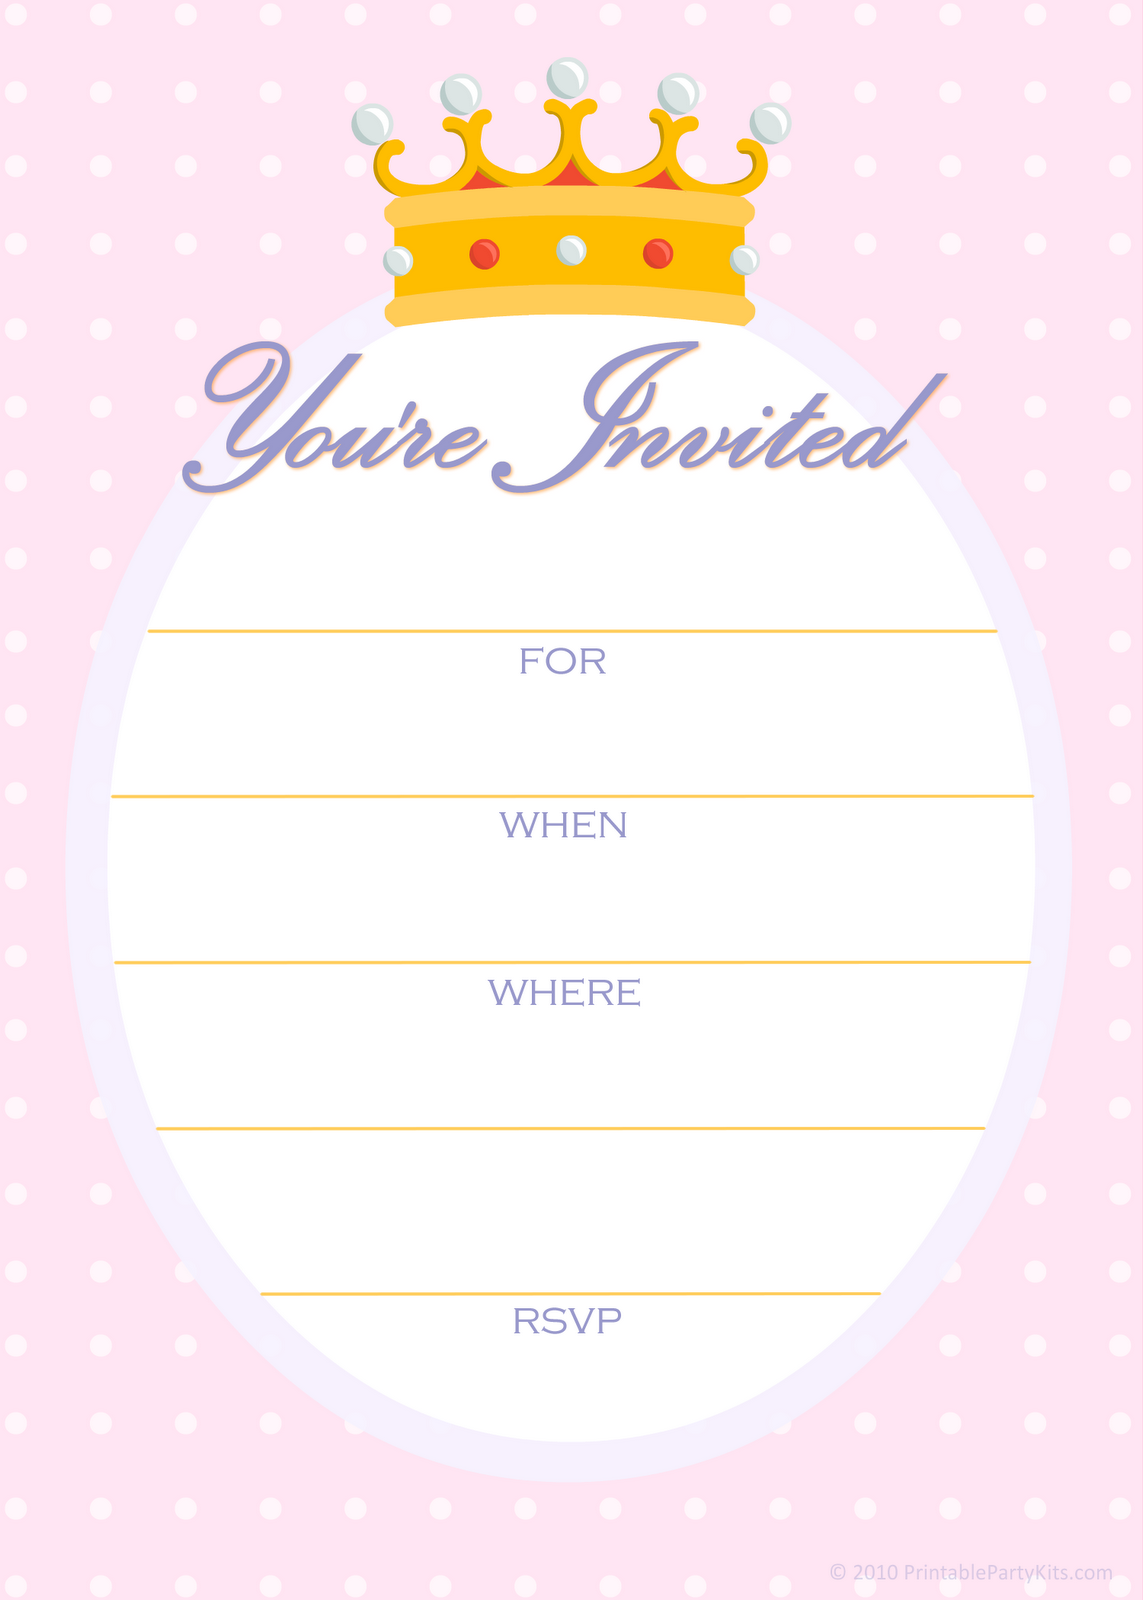 Free printable party invitations free invitations for a princess free printable party invitations free invitations for a princess birthday party filmwisefo Images